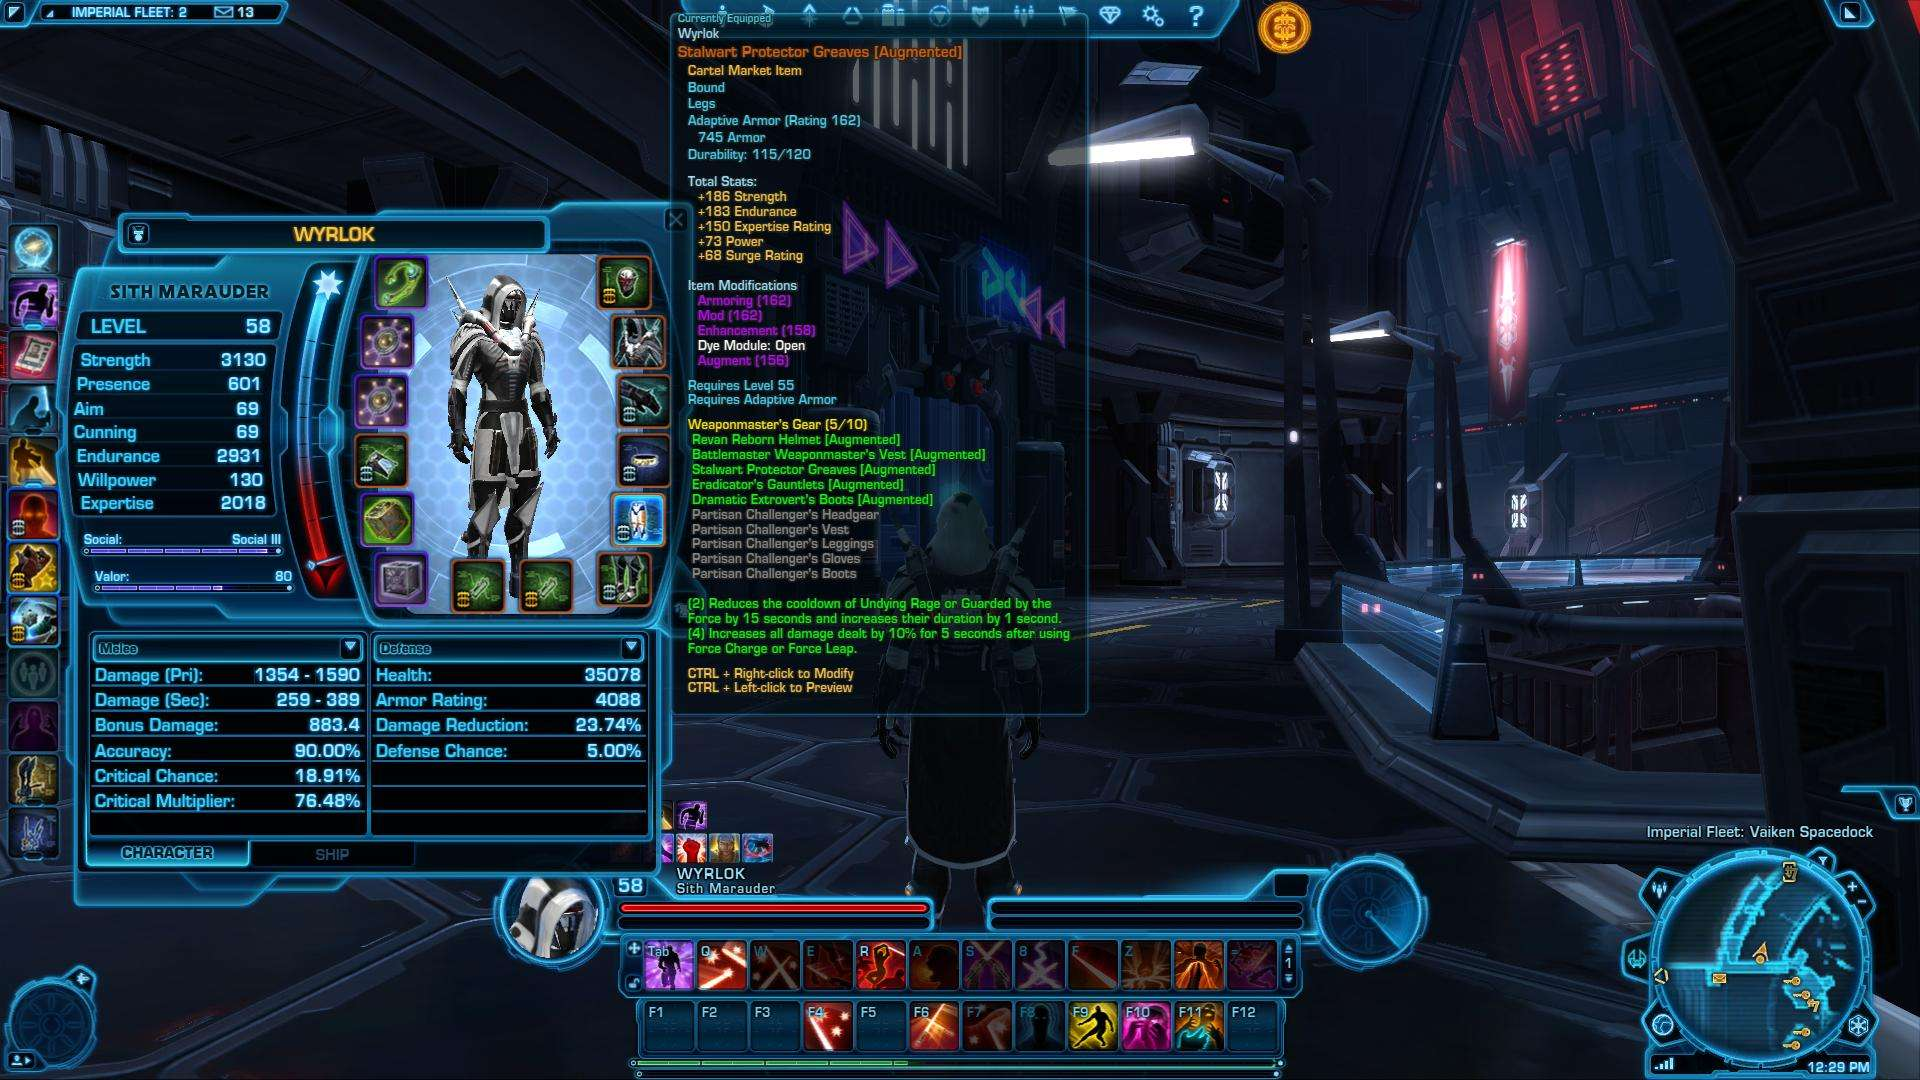 Cleaned My Room! Swtor_21